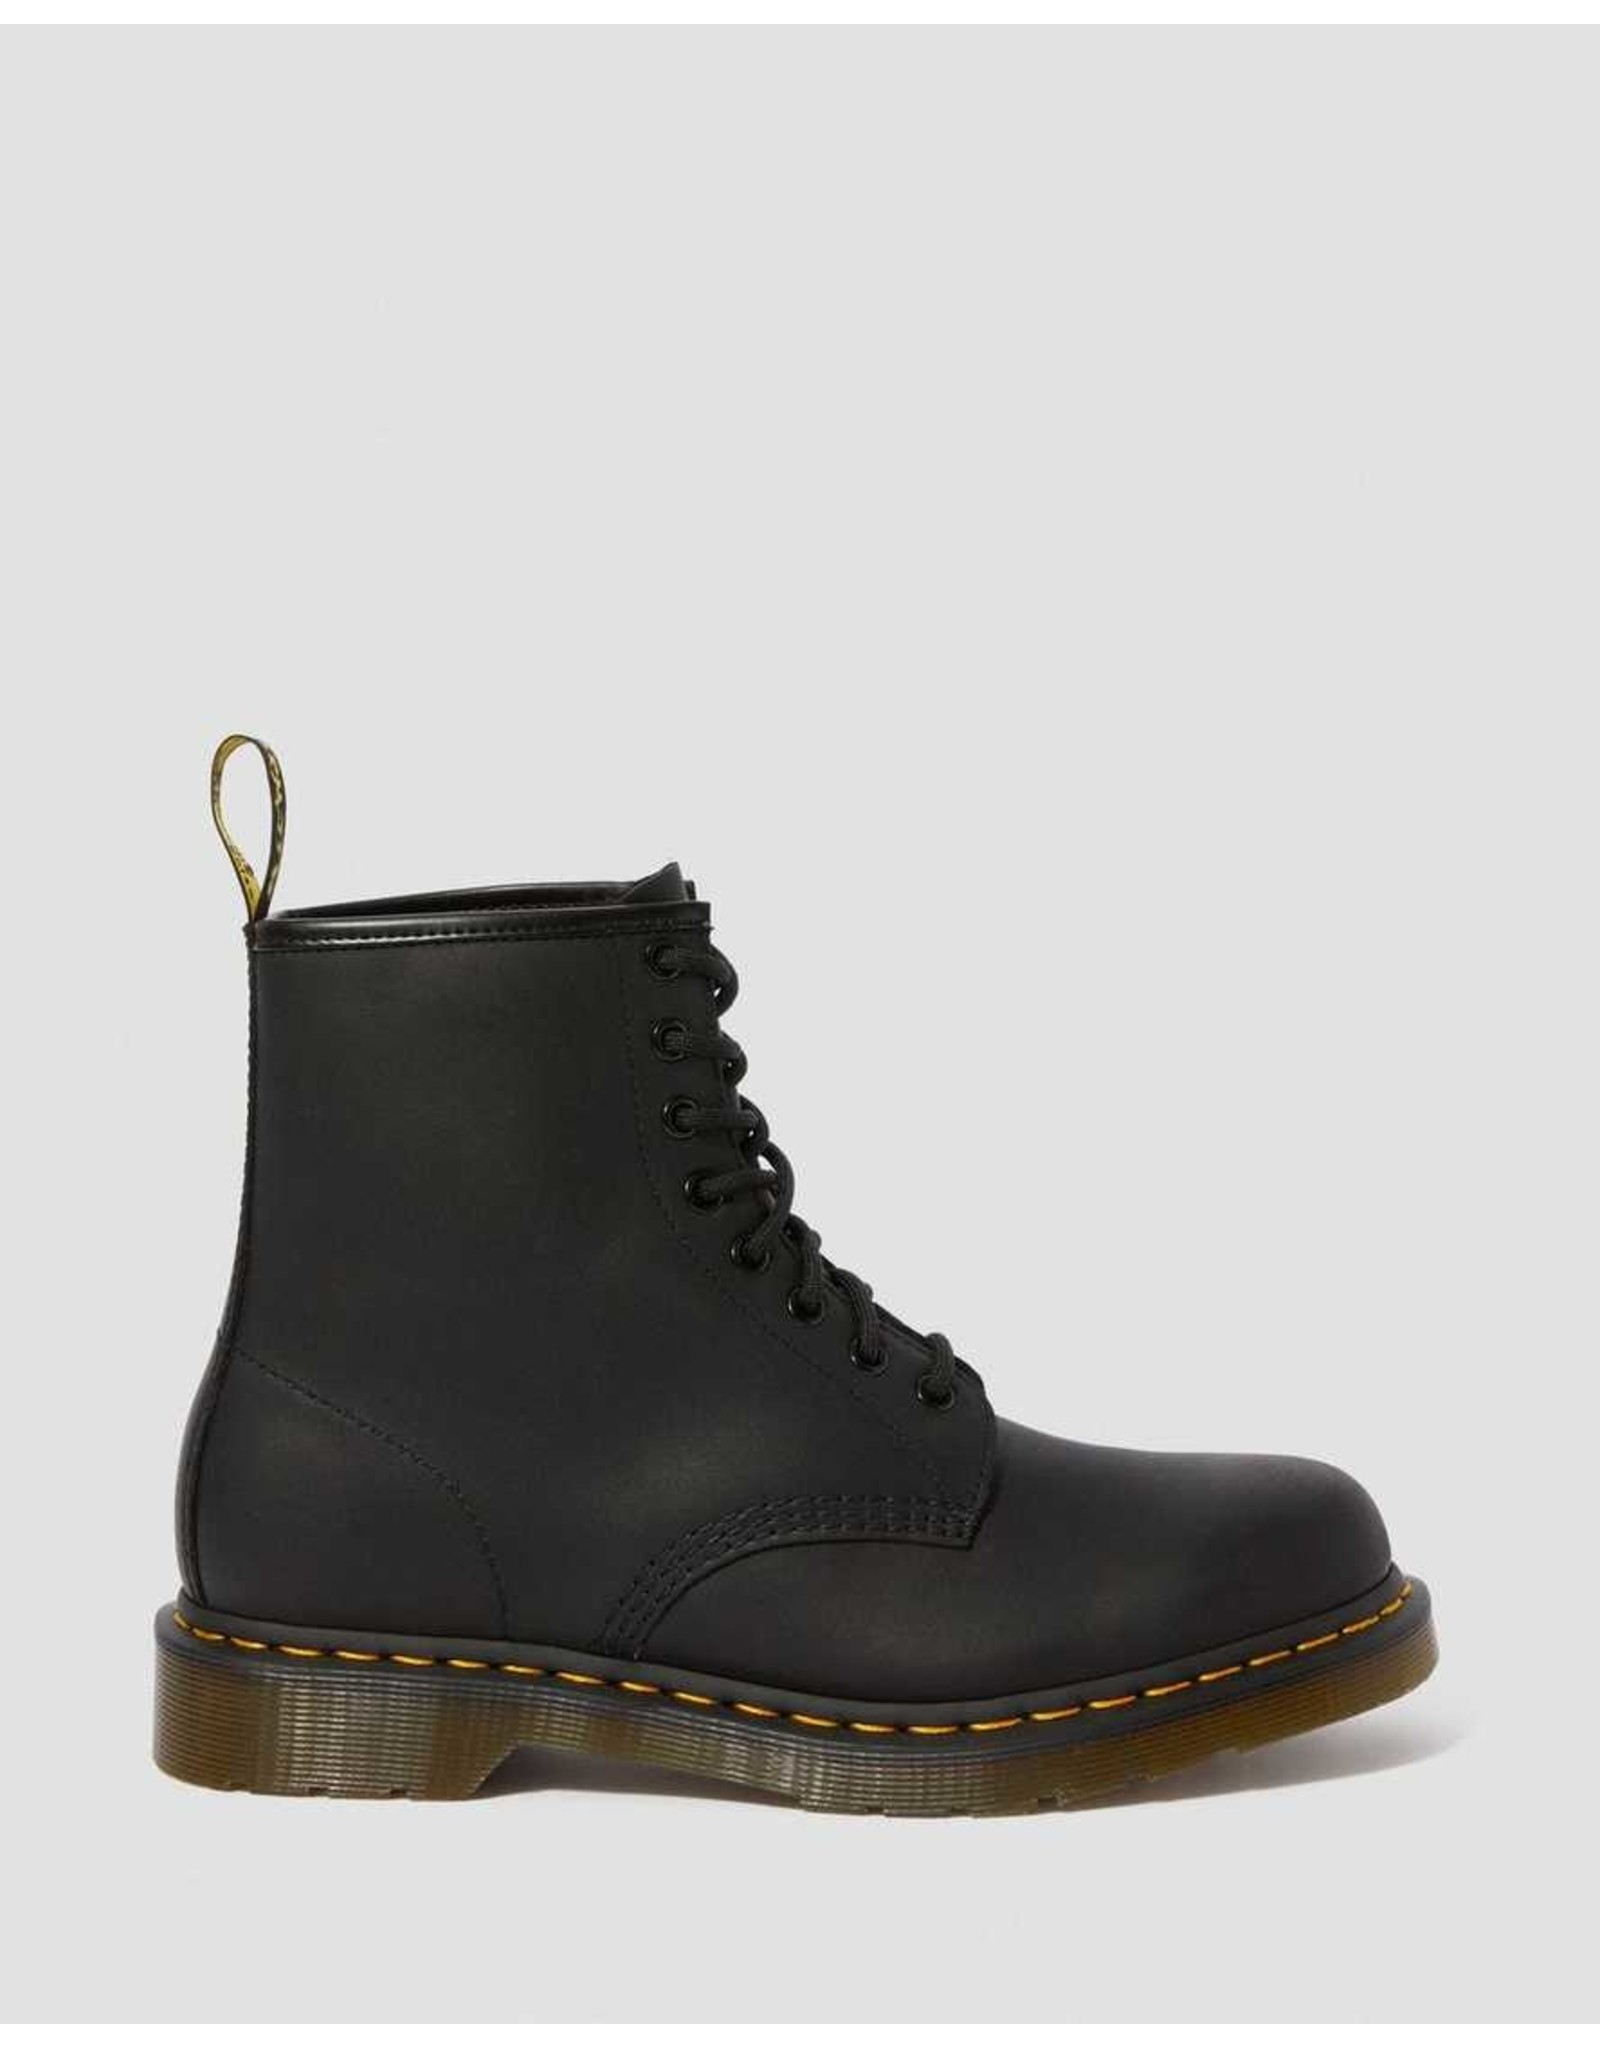 DR. MARTENS DR. MARTENS BLACK GREASY LEATHER LACE UP BOOTS